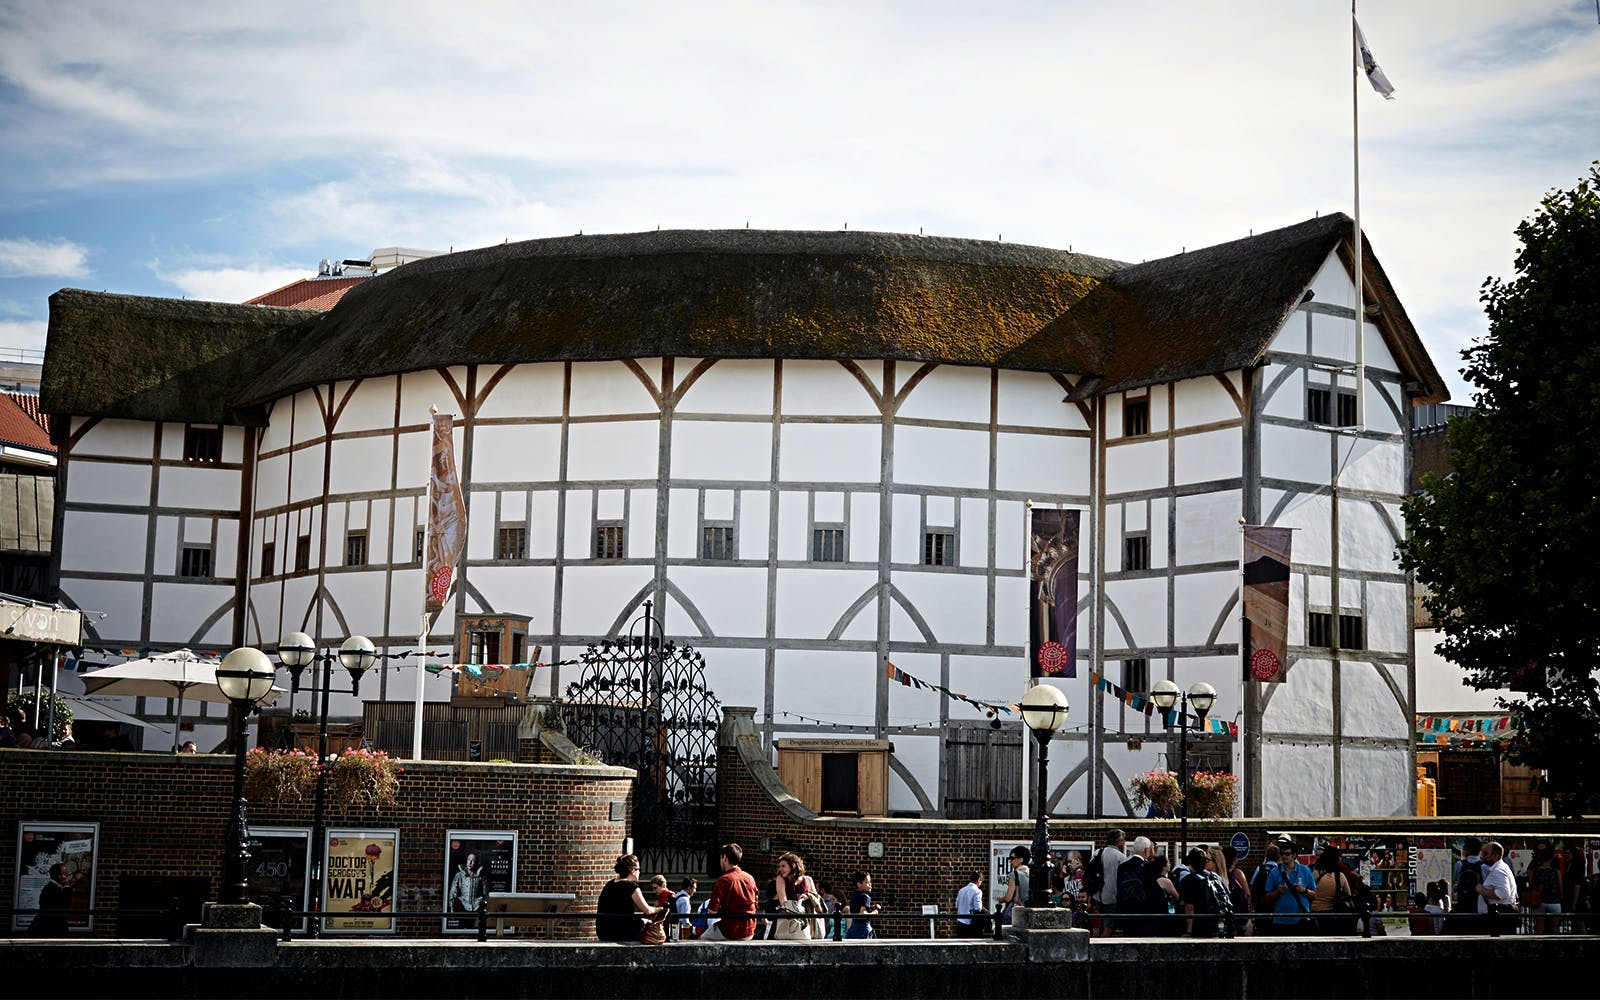 Shakespeare Globe Room: Exhibit and Tour Tickets